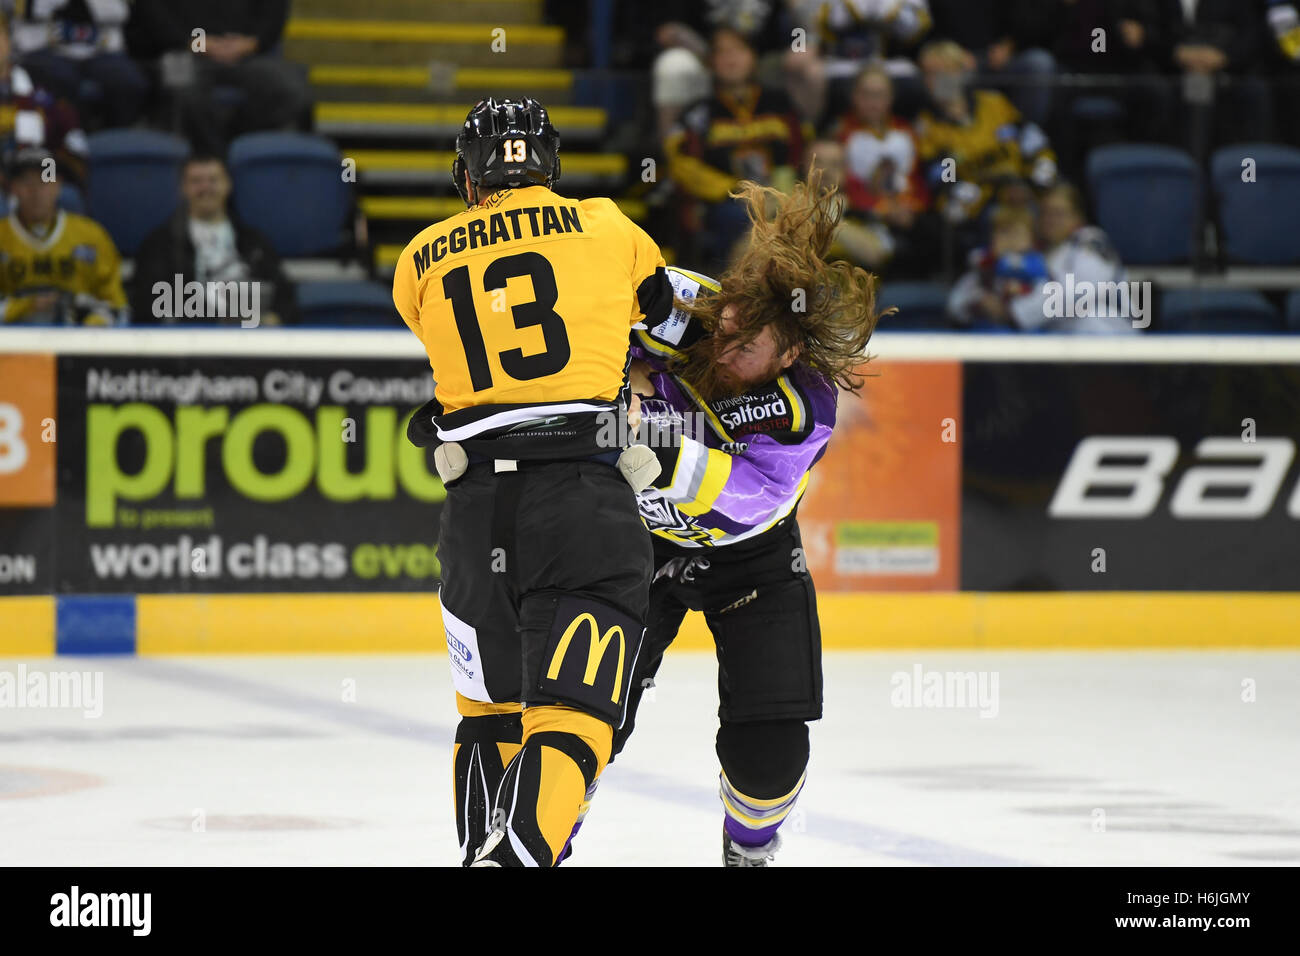 Brian Mcgrattan fights Eric Neilson during the Nottingham Panthers v Manchester Storm EIHL matchup. - Stock Image